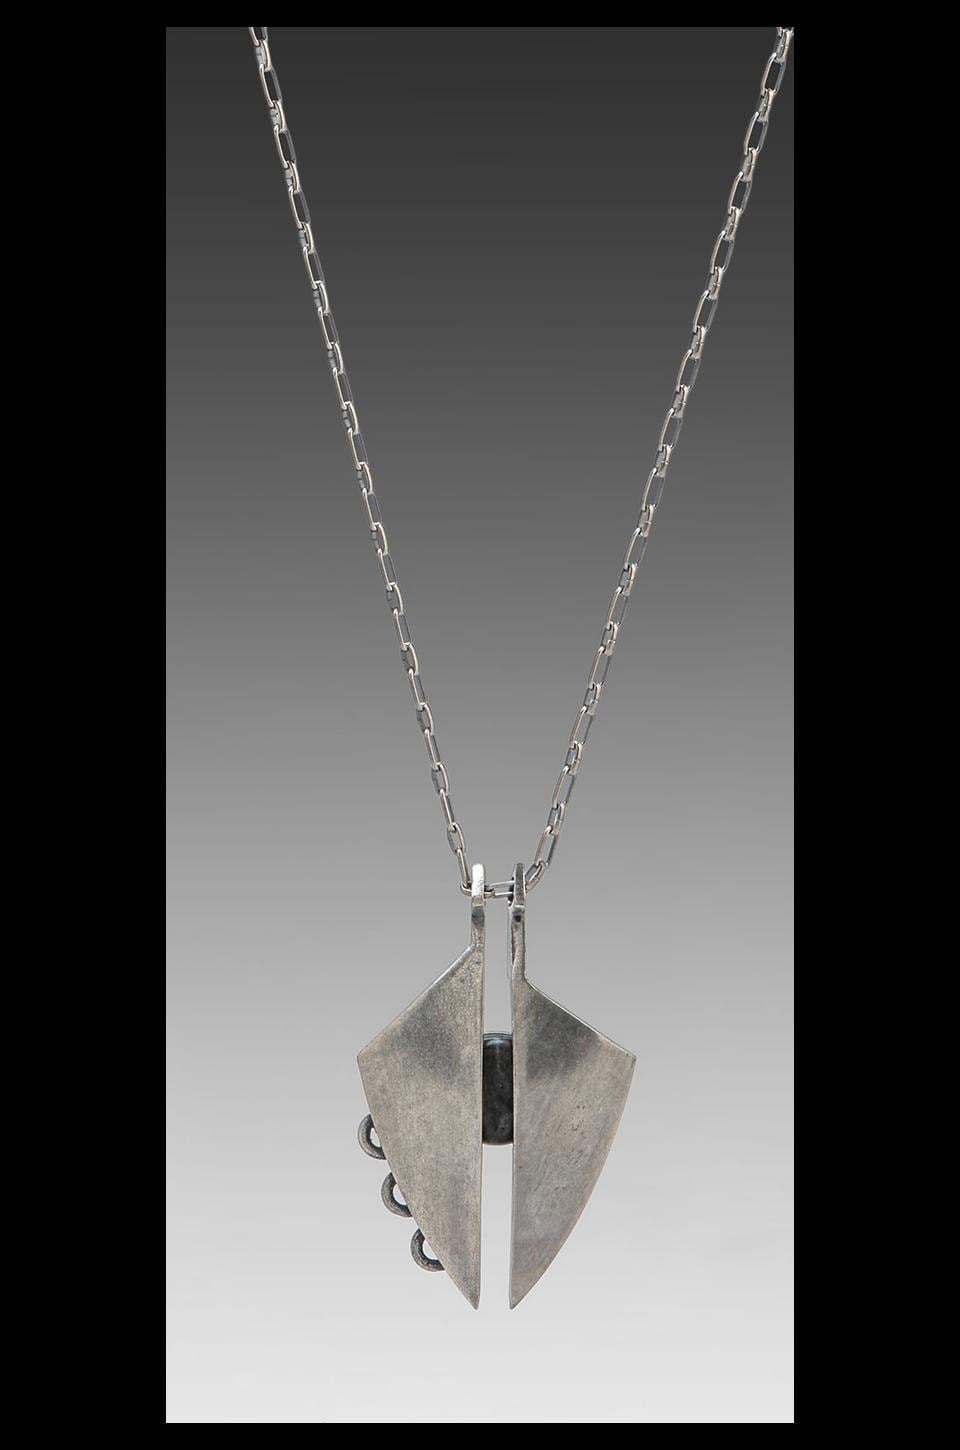 Low Luv x Erin Wasson Eclipse Pendulum Necklace in Silver